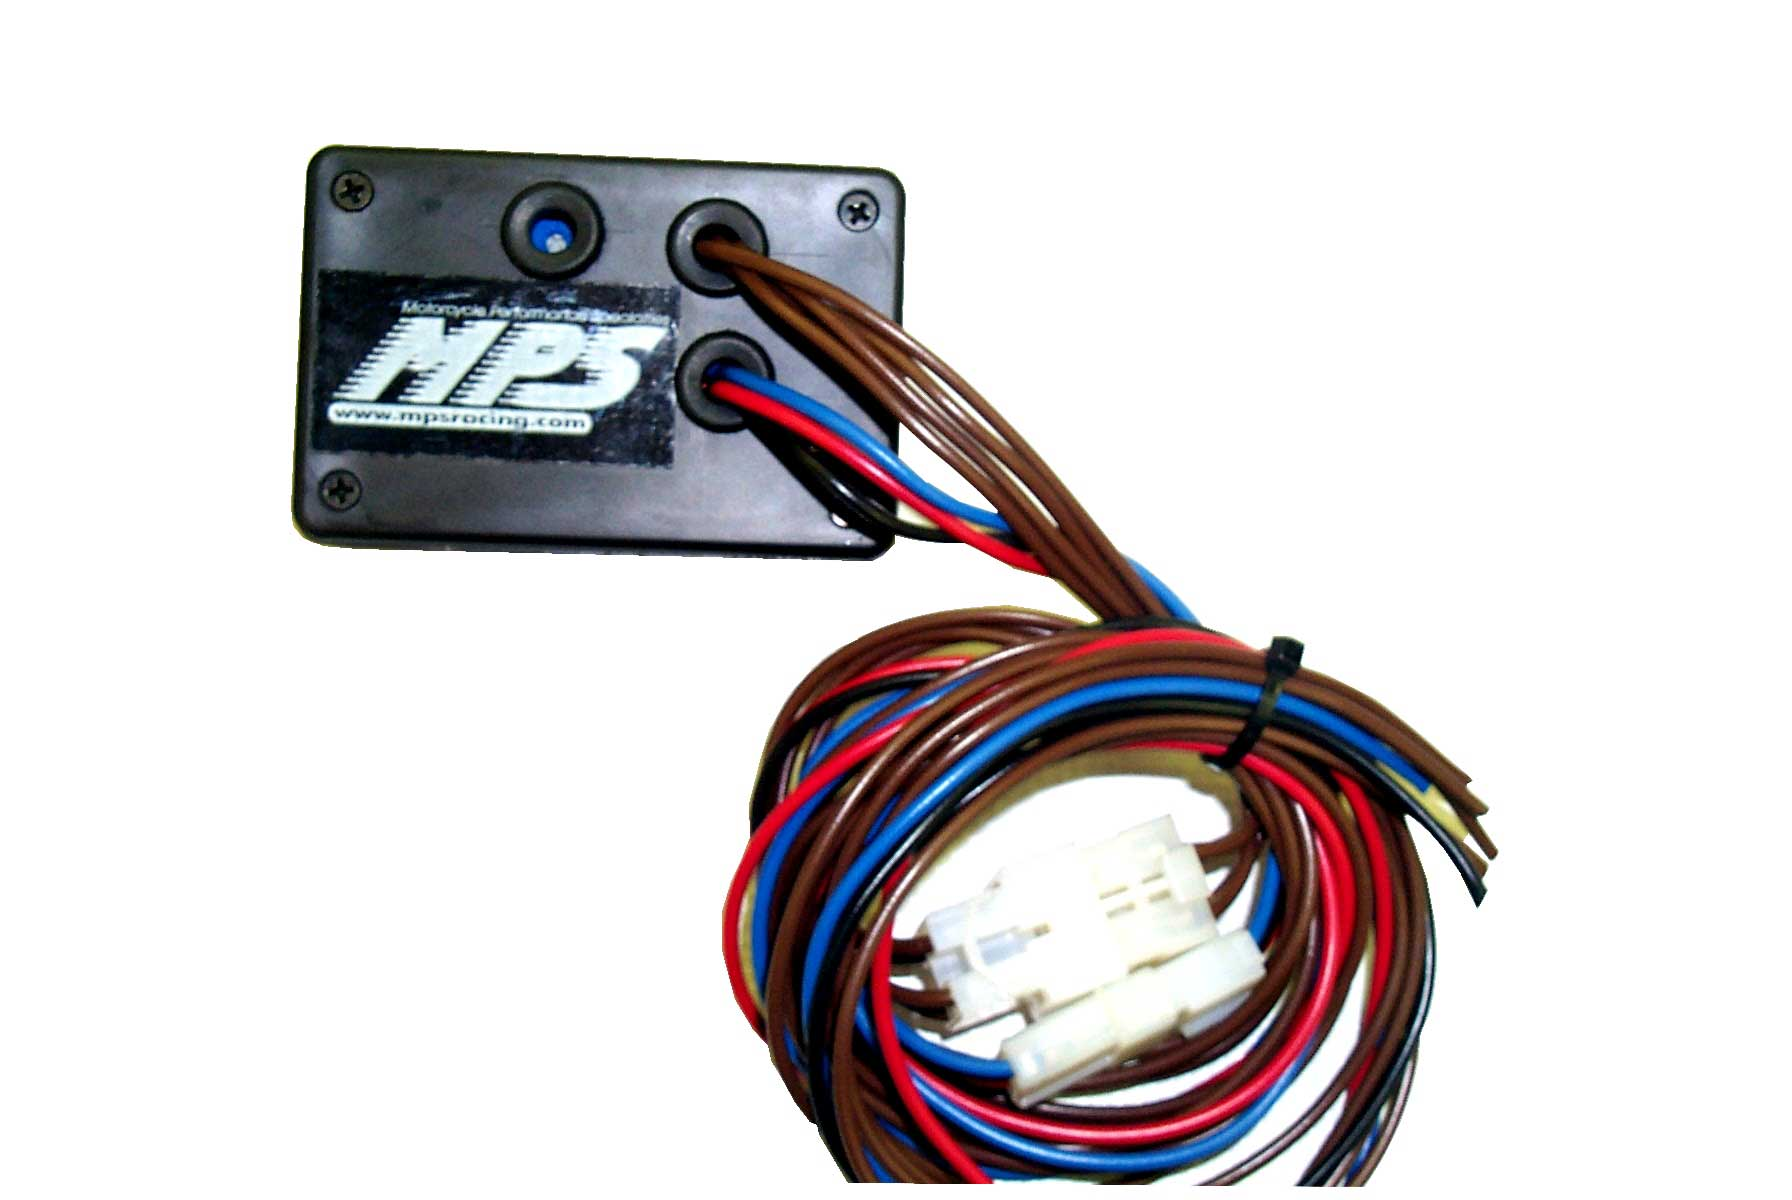 Mps Engine Kills Wiring Harness Symptoms 1 0263 Sport Bike Kill